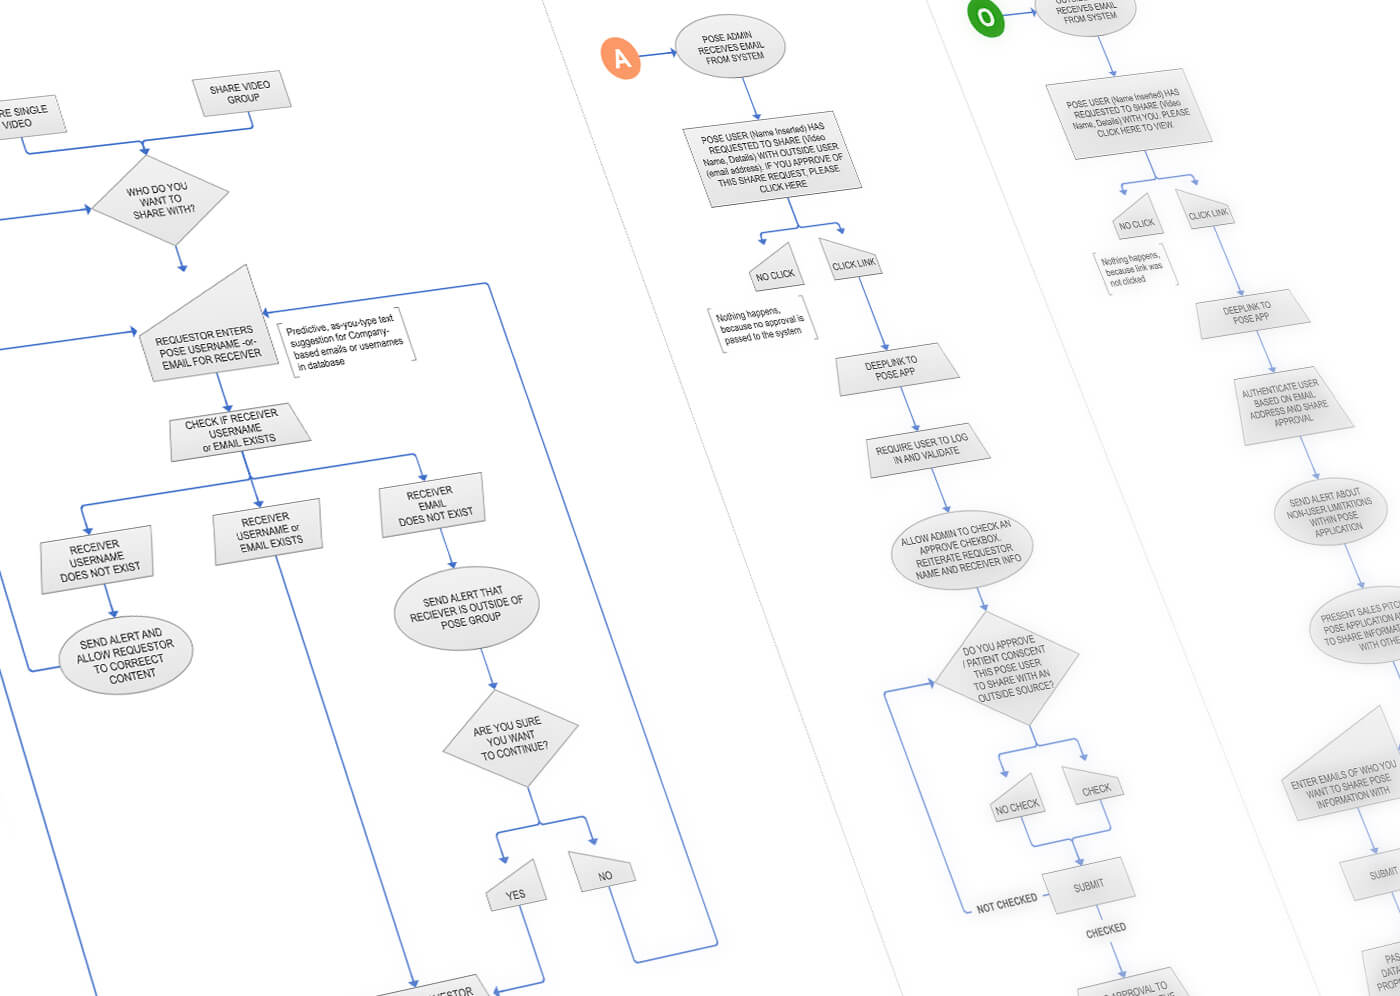 User flow diagram showing how admins and other users interact with the site